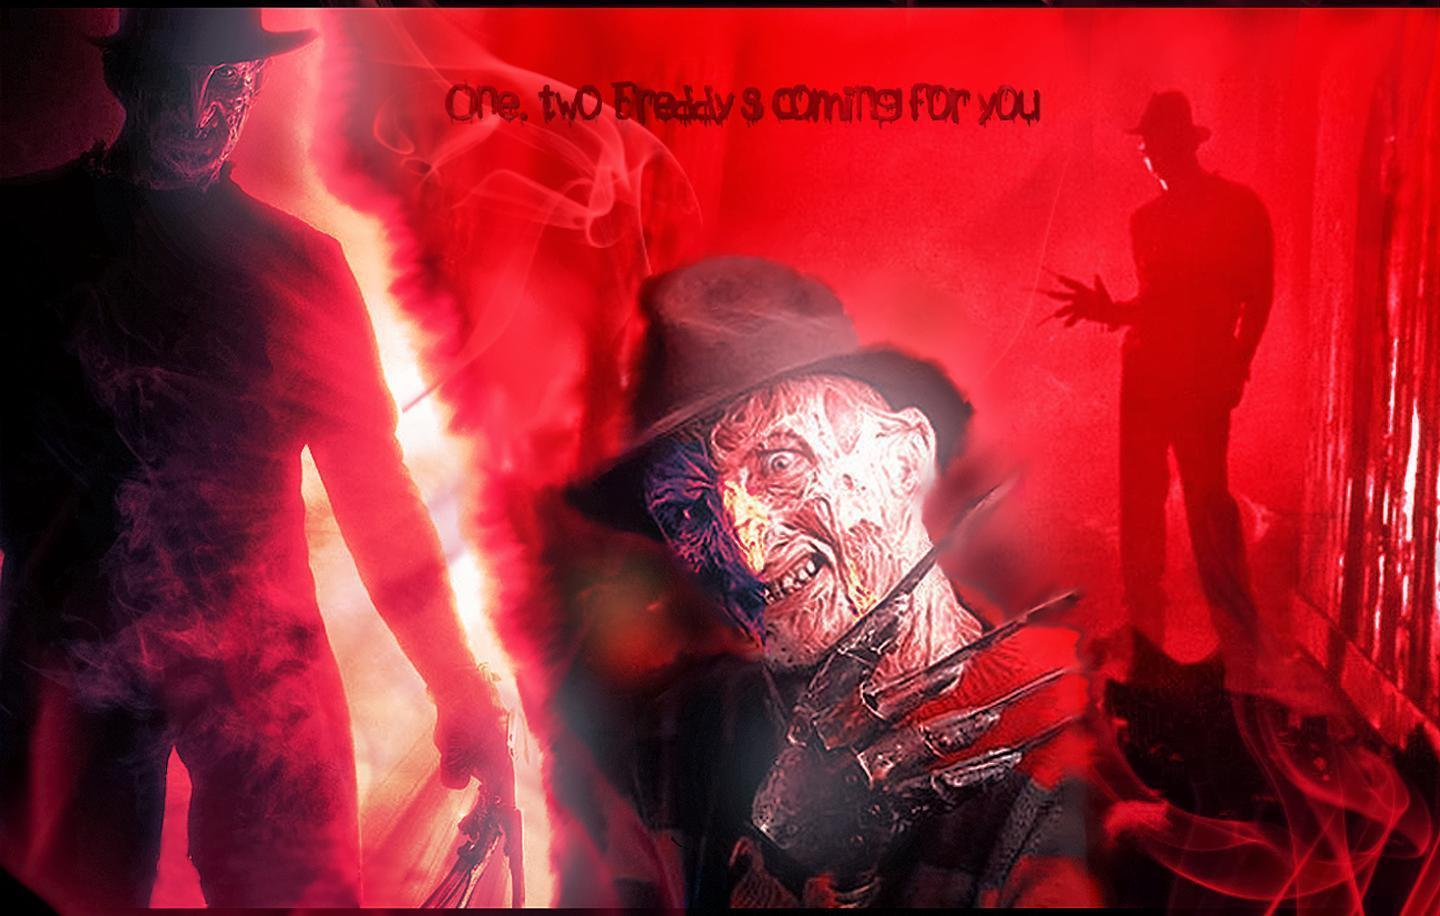 Freddy Krueger Backgrounds - Wallpaper Cave